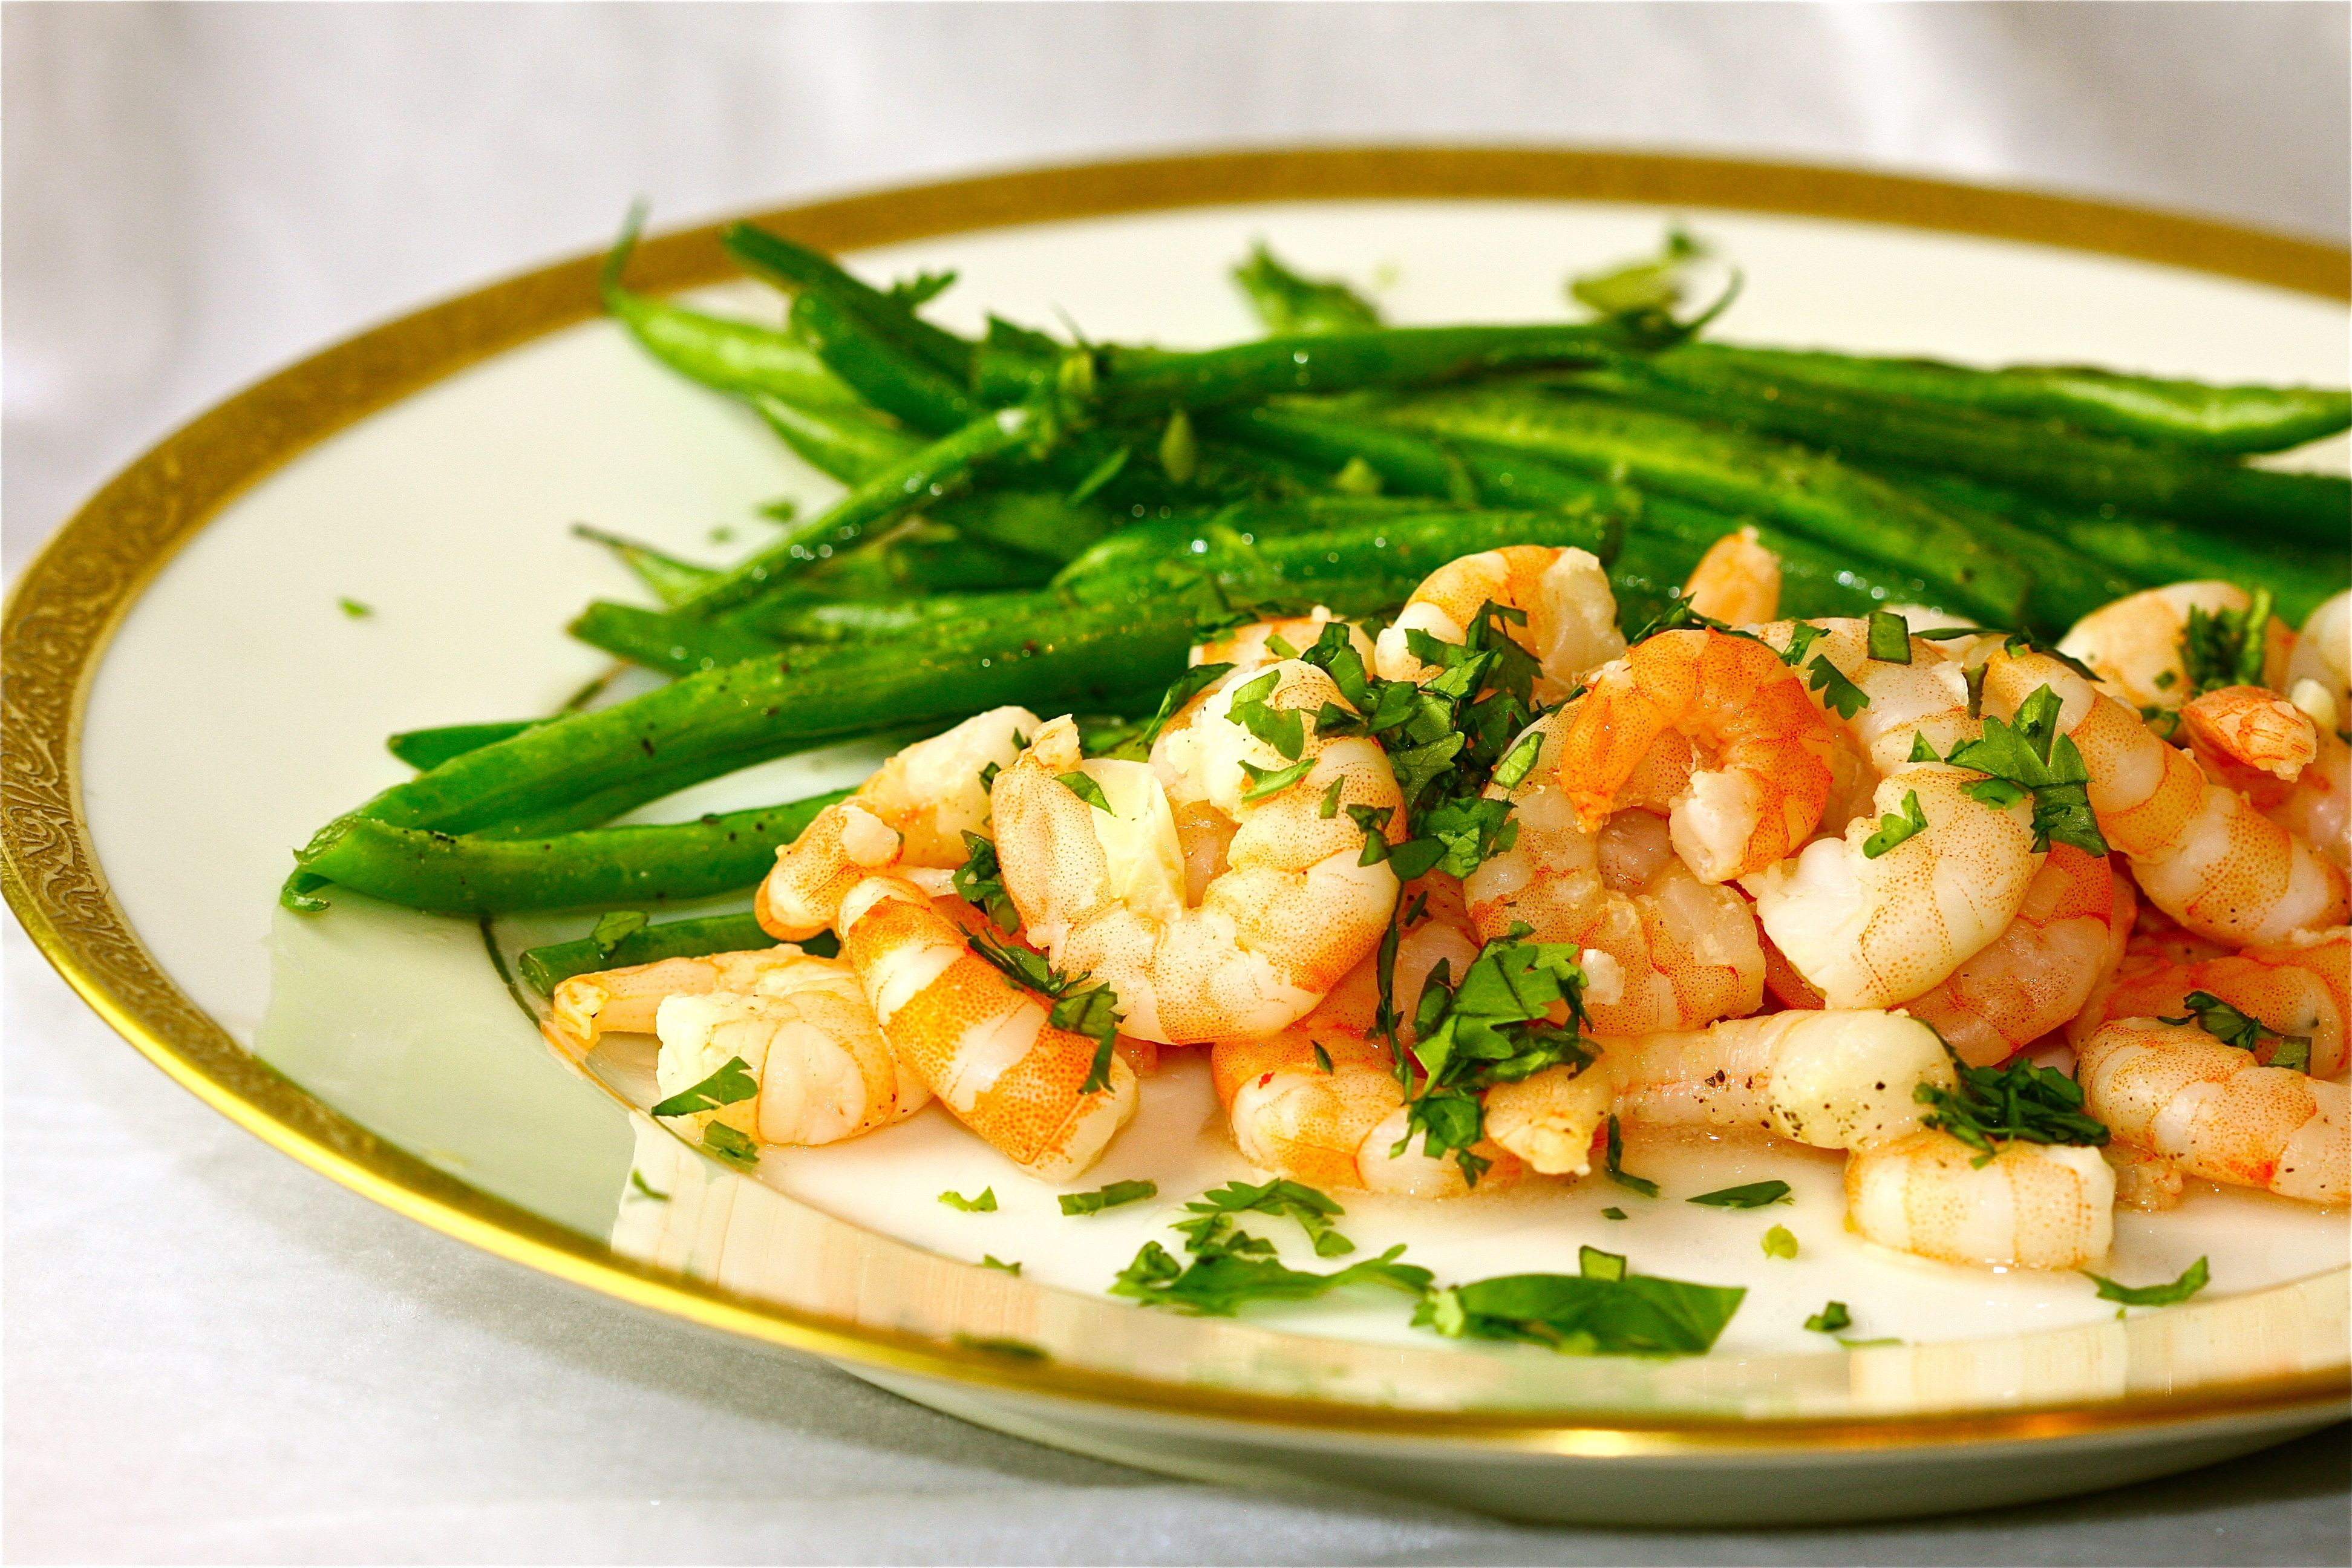 Healthy Shrimp Dinners  Easy Healthy Choice for Dinner Ali in the Valley